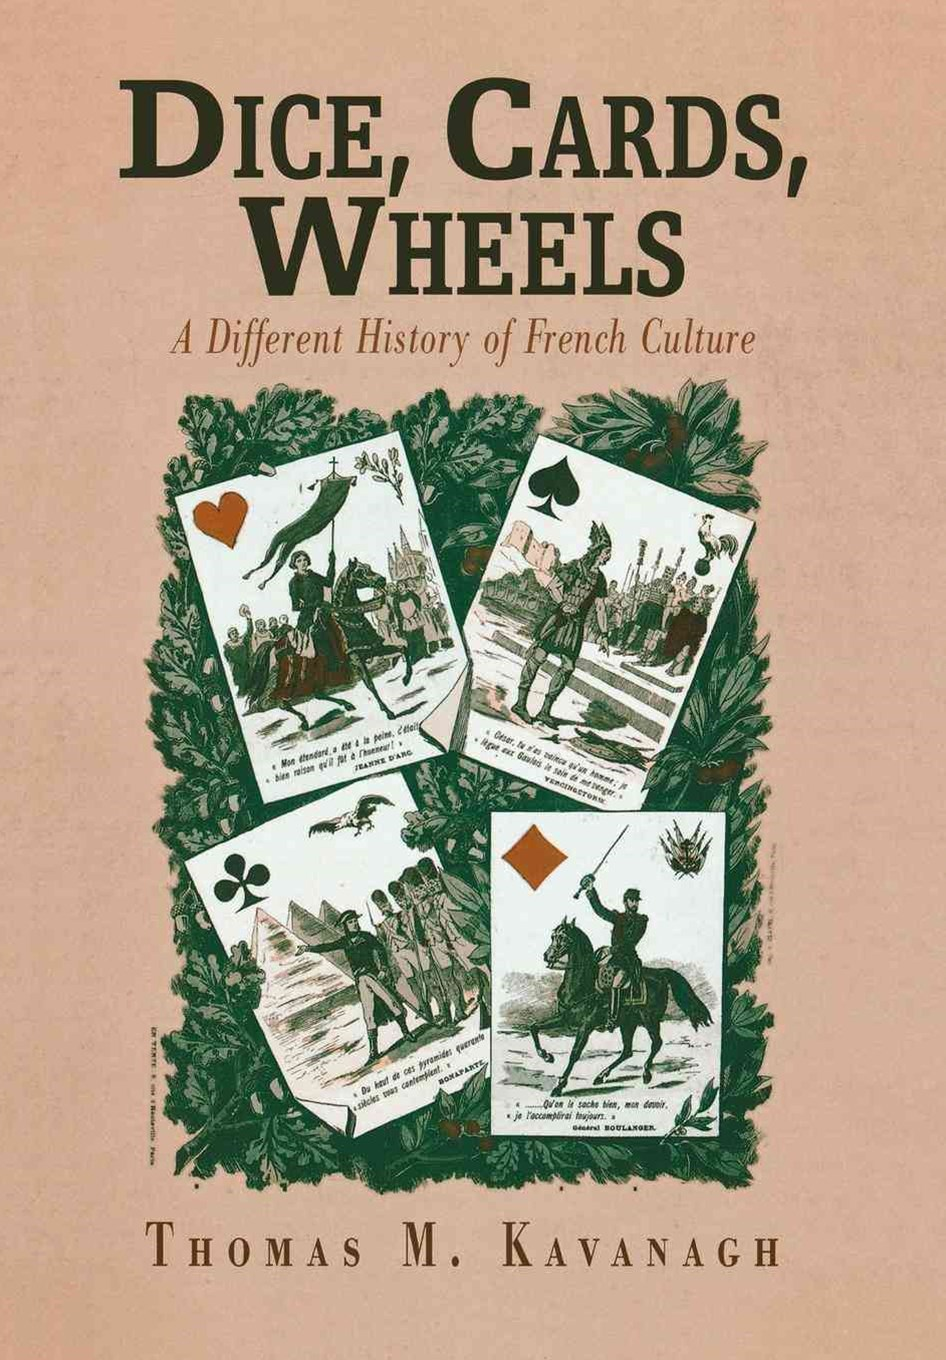 Dice, Cards, Wheels